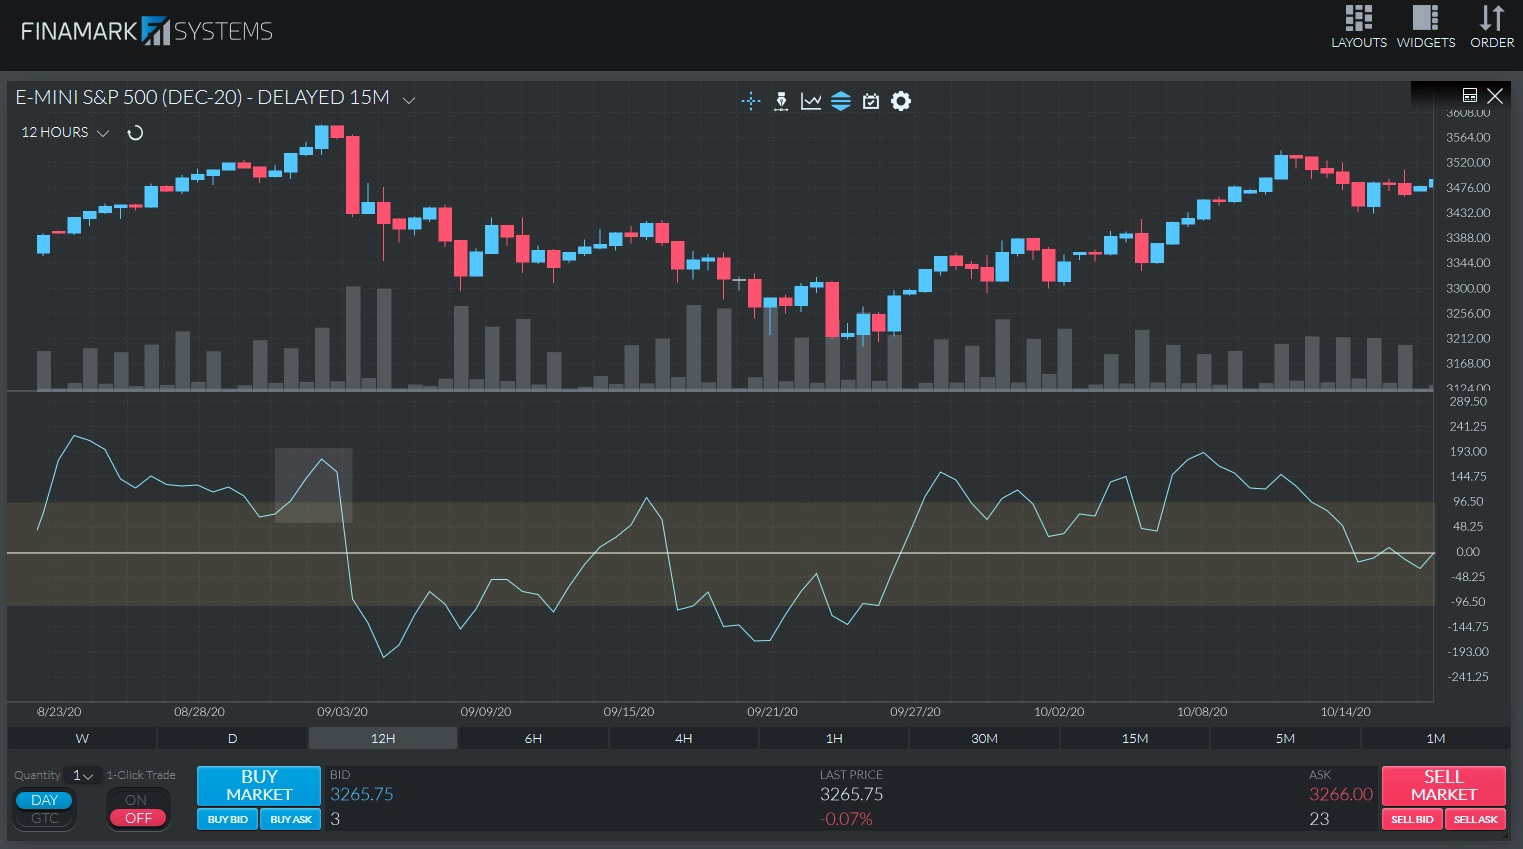 CCI Overbought or Oversold Price Levels